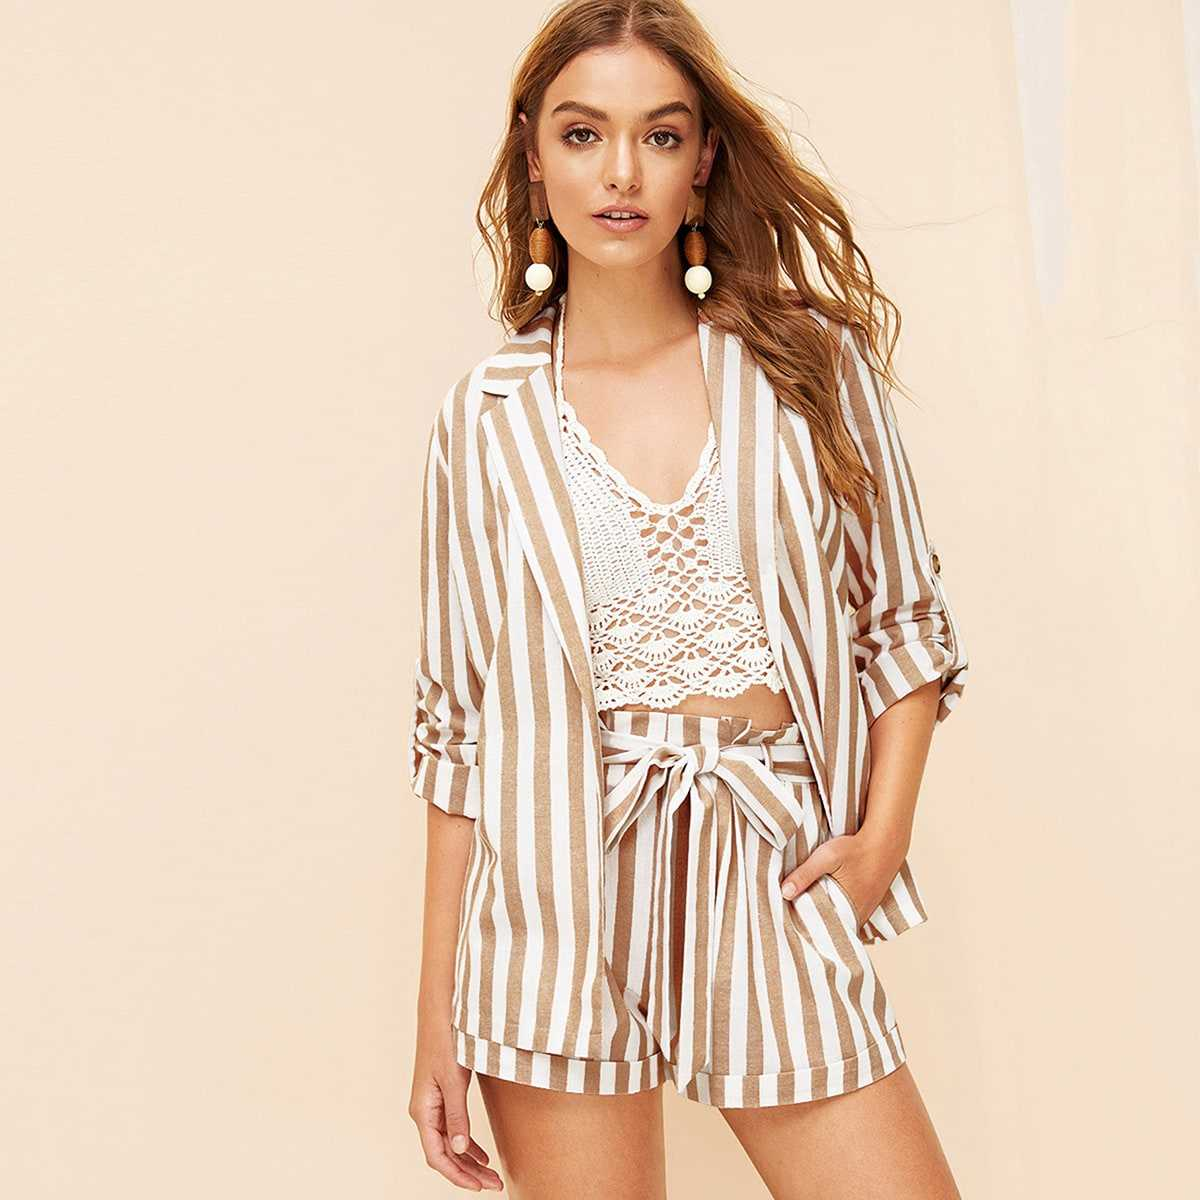 Notched Collar Vertical-stripe Blazer in Multicolor by ROMWE on GOOFASH